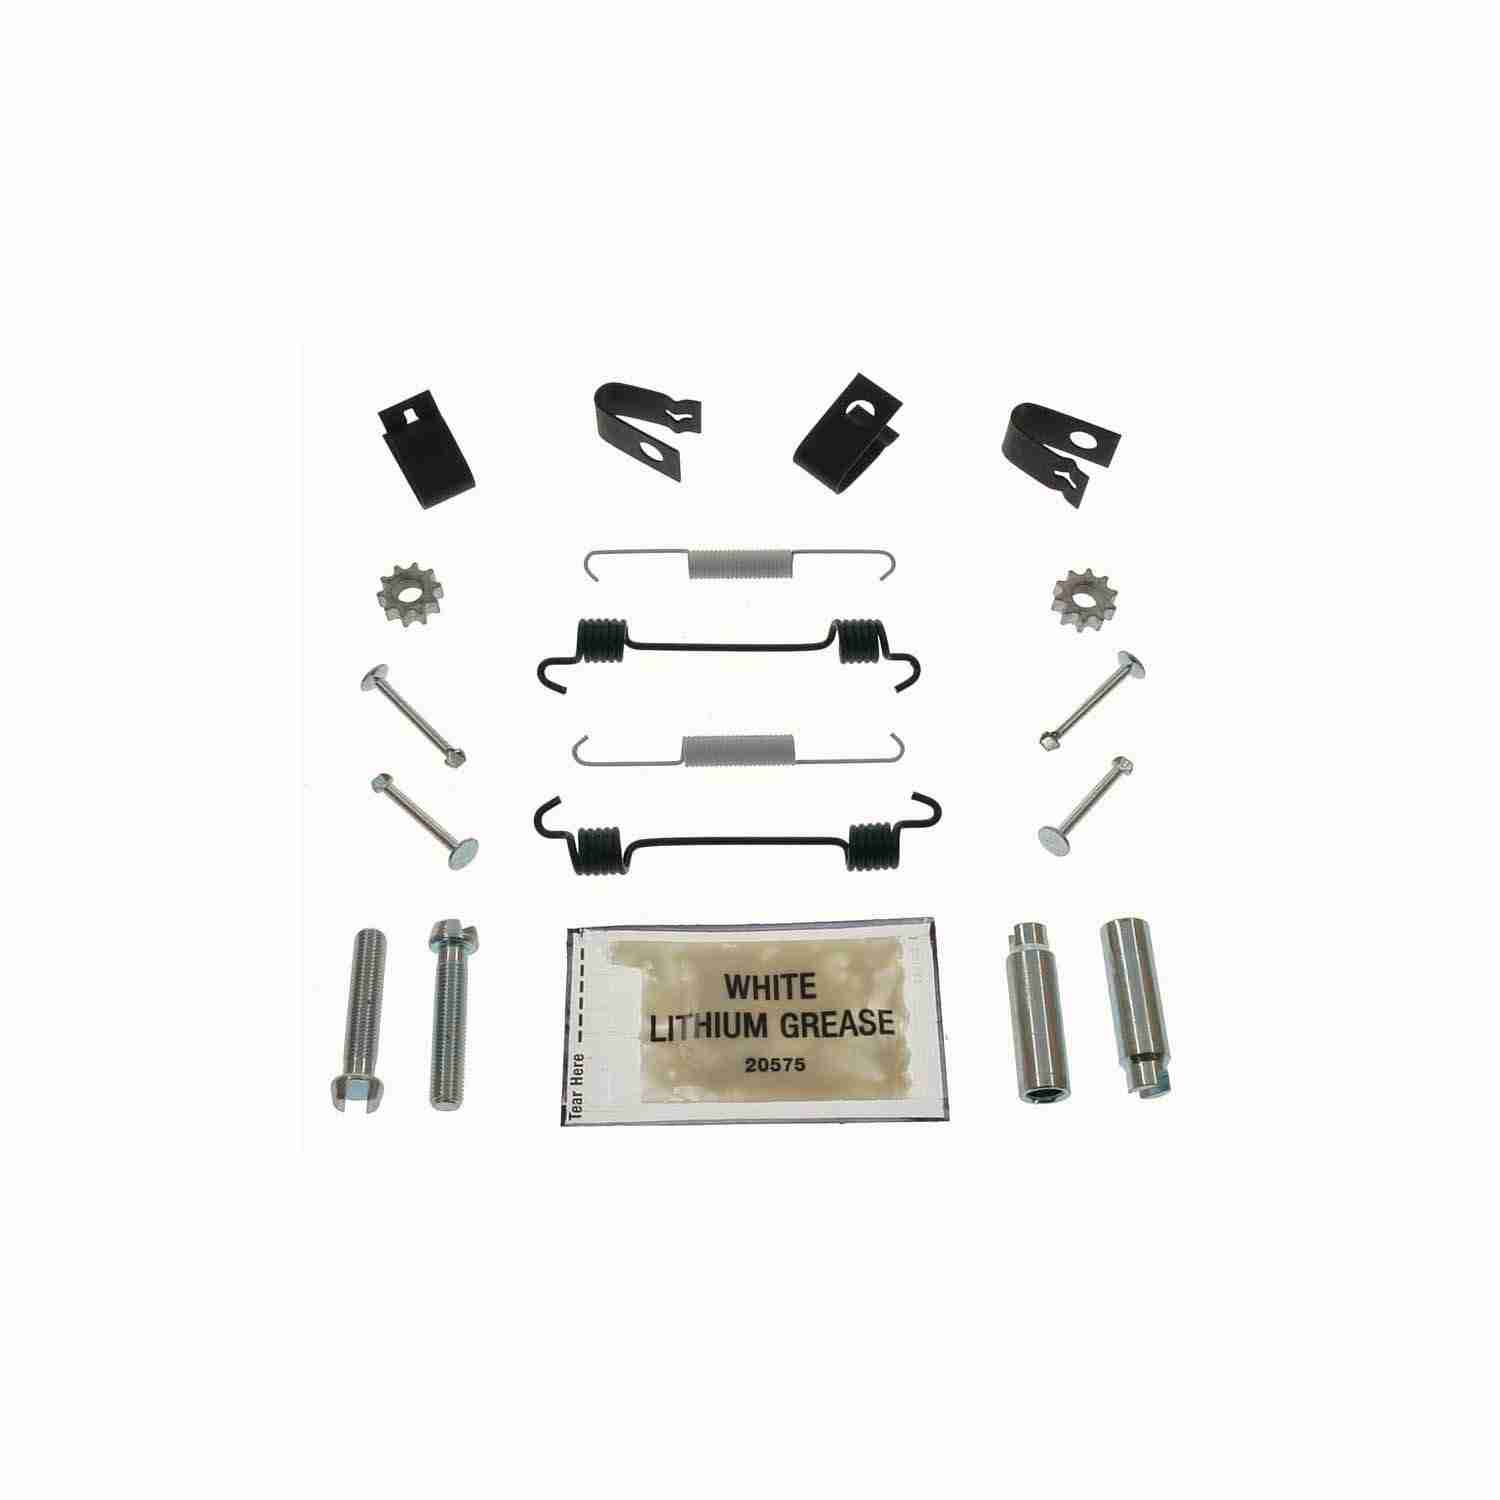 CARLSON QUALITY BRAKE PARTS - Parking Brake Hardware Kit (Rear) - CRL H7302